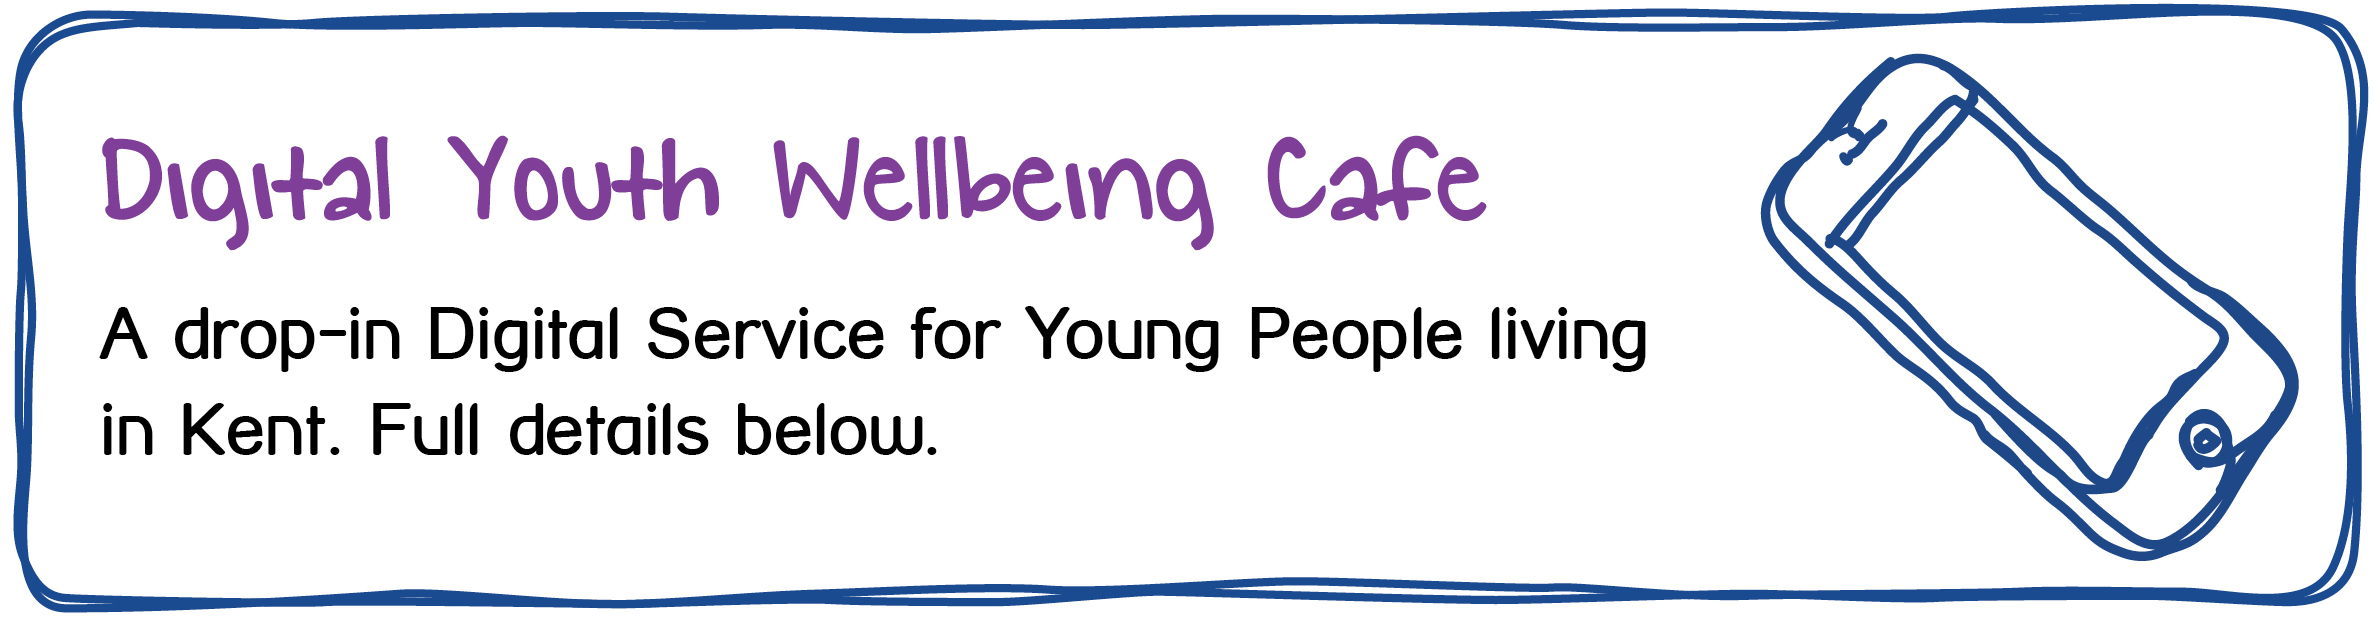 Kent Youth Wellbeing Cafe. Digital Youth Wellbeing Cafe. A drop-in Digital Service for Young People living in Kent. Full details below.